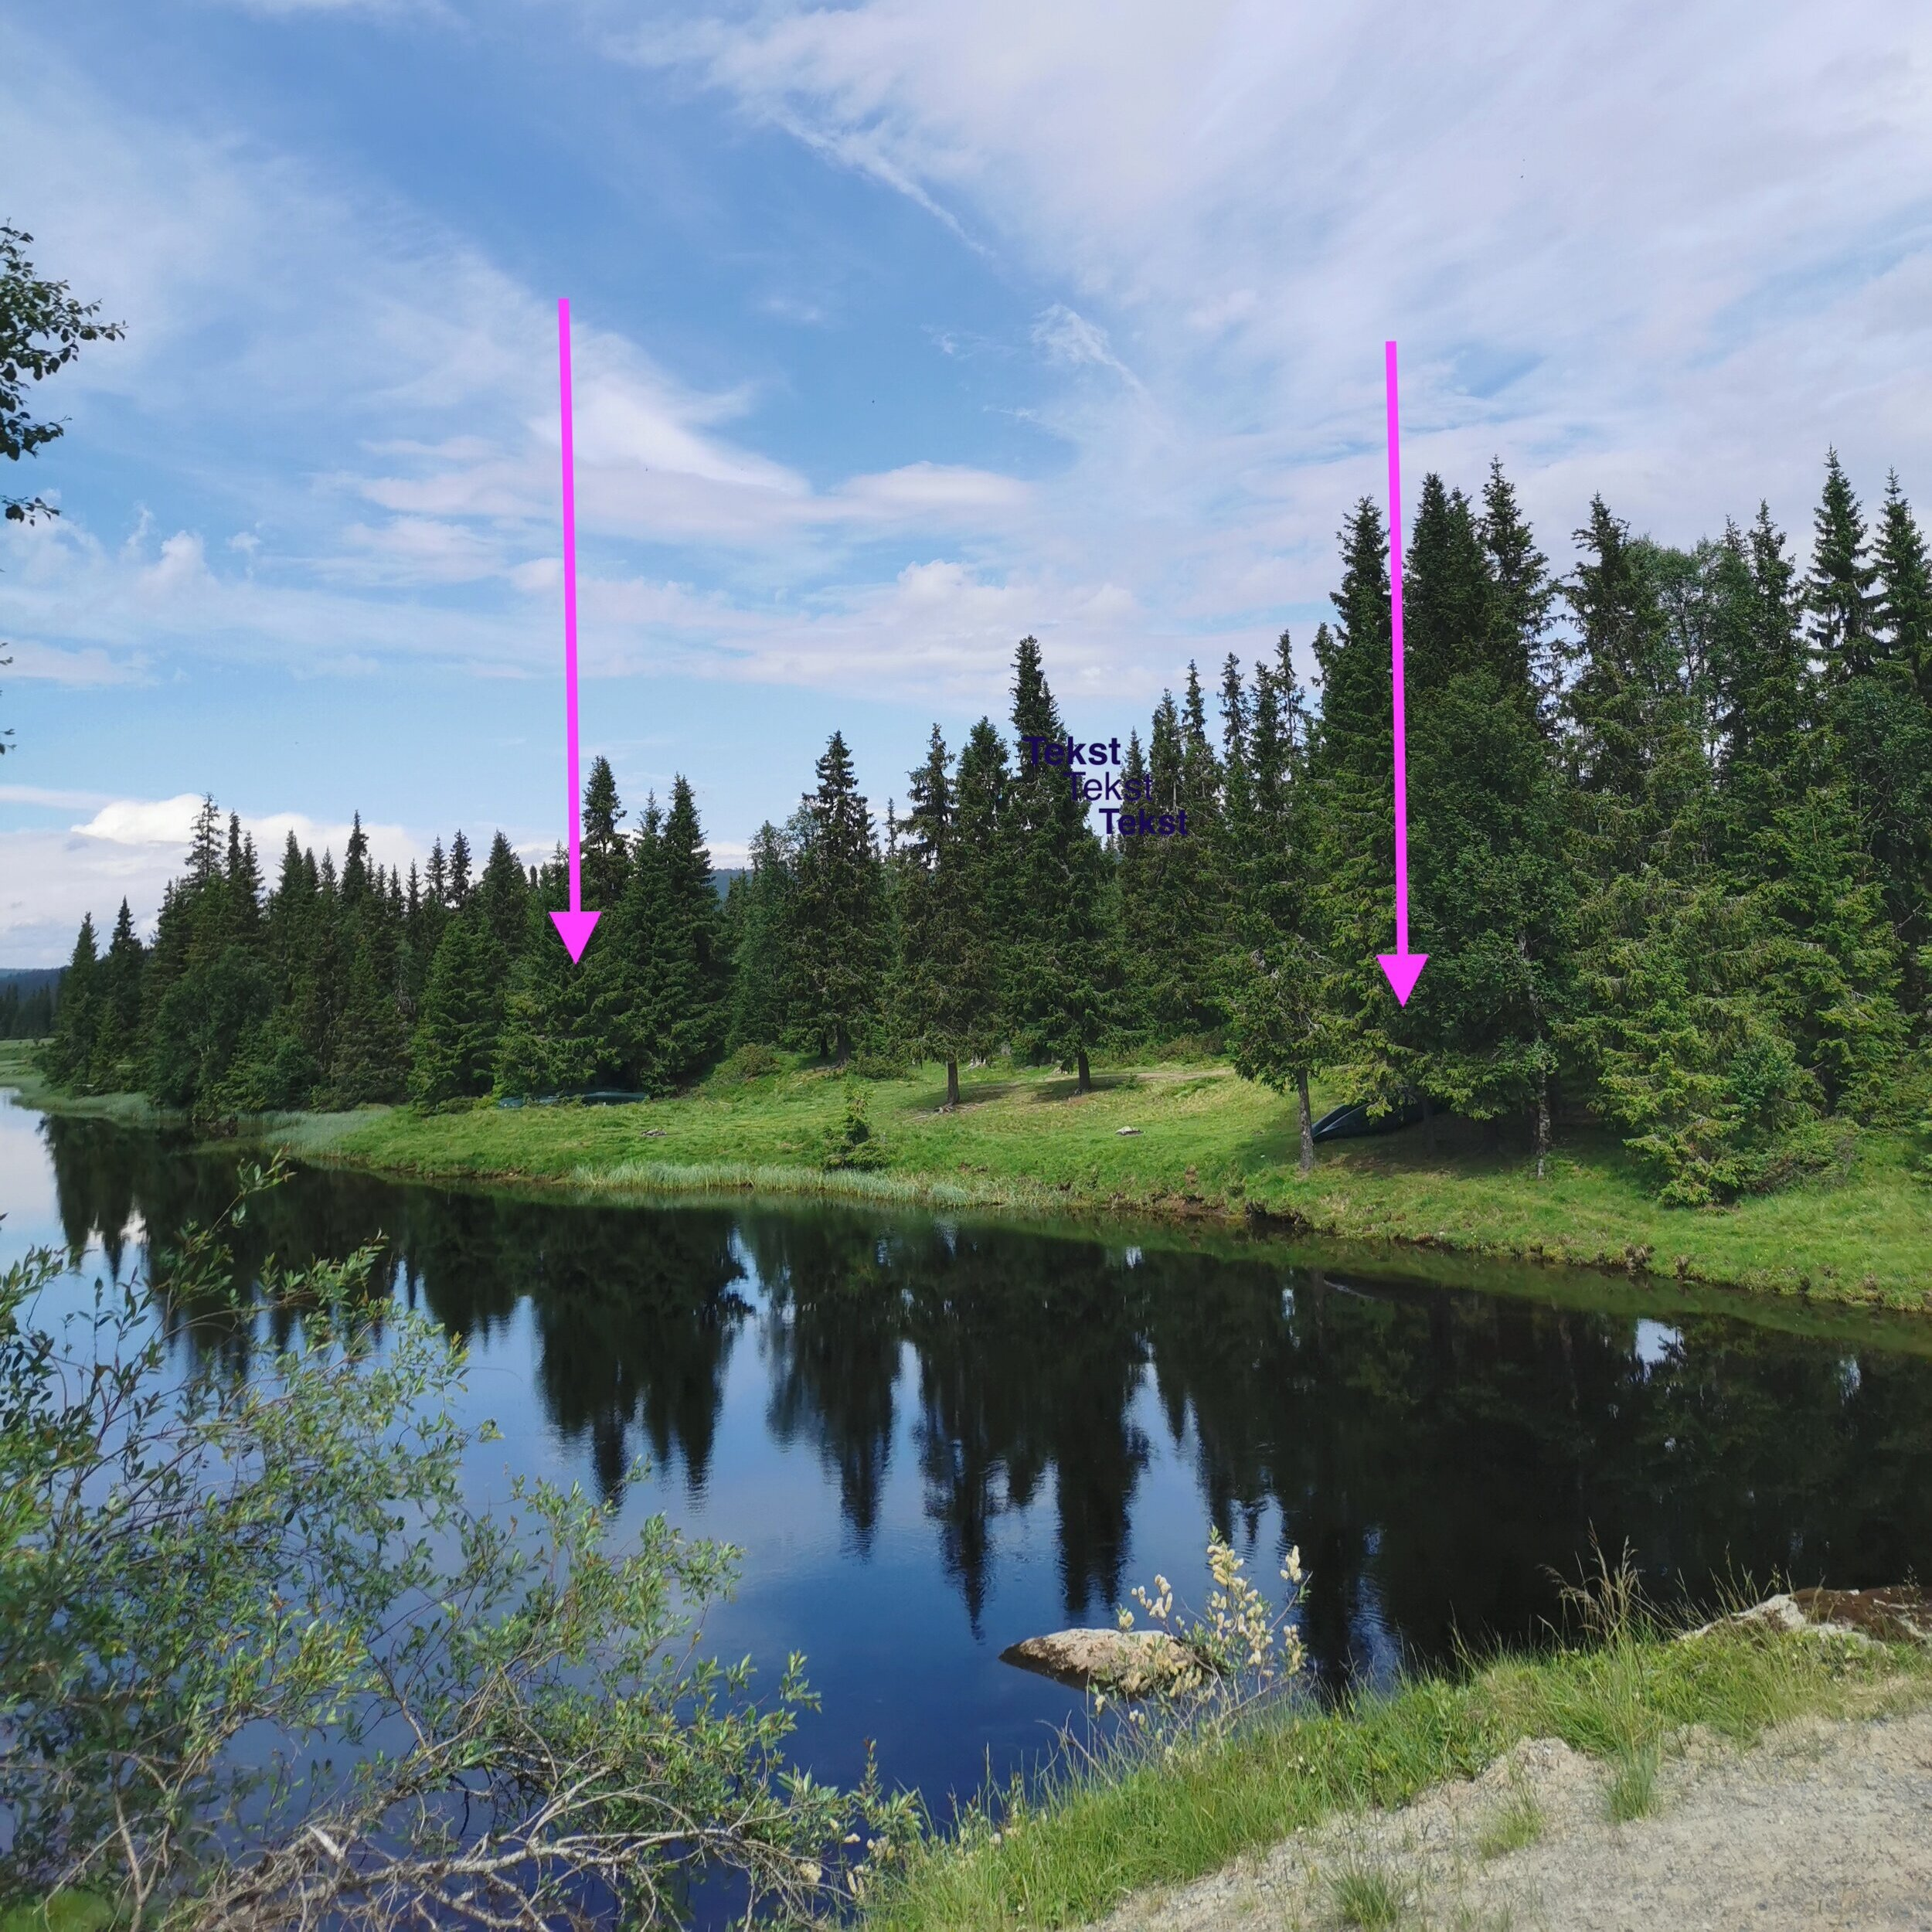 """Canoes are here, just by the cabin """"Brubakken"""" which is also on Google maps. This is also a nice place for staying over in your own tent."""